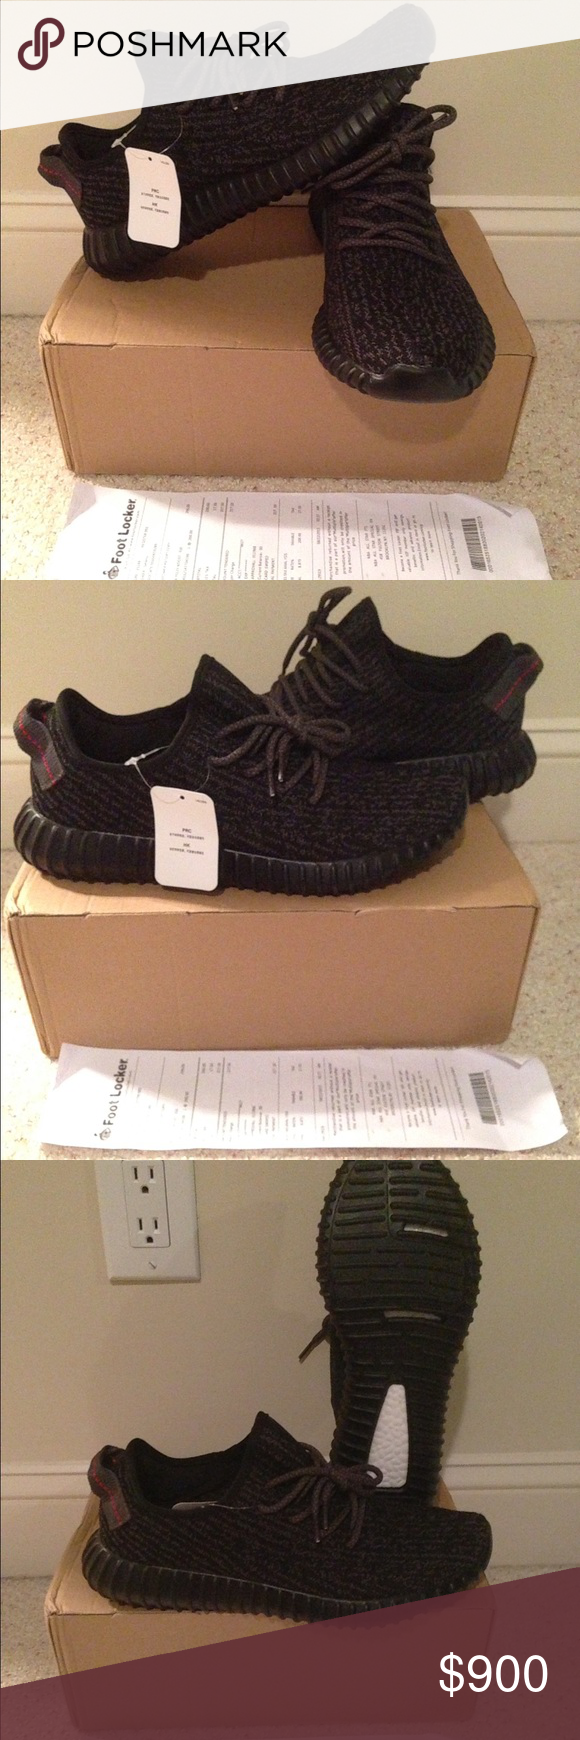 yeezy boost 350 pirate black 9.5 adidas eqt support 93/17